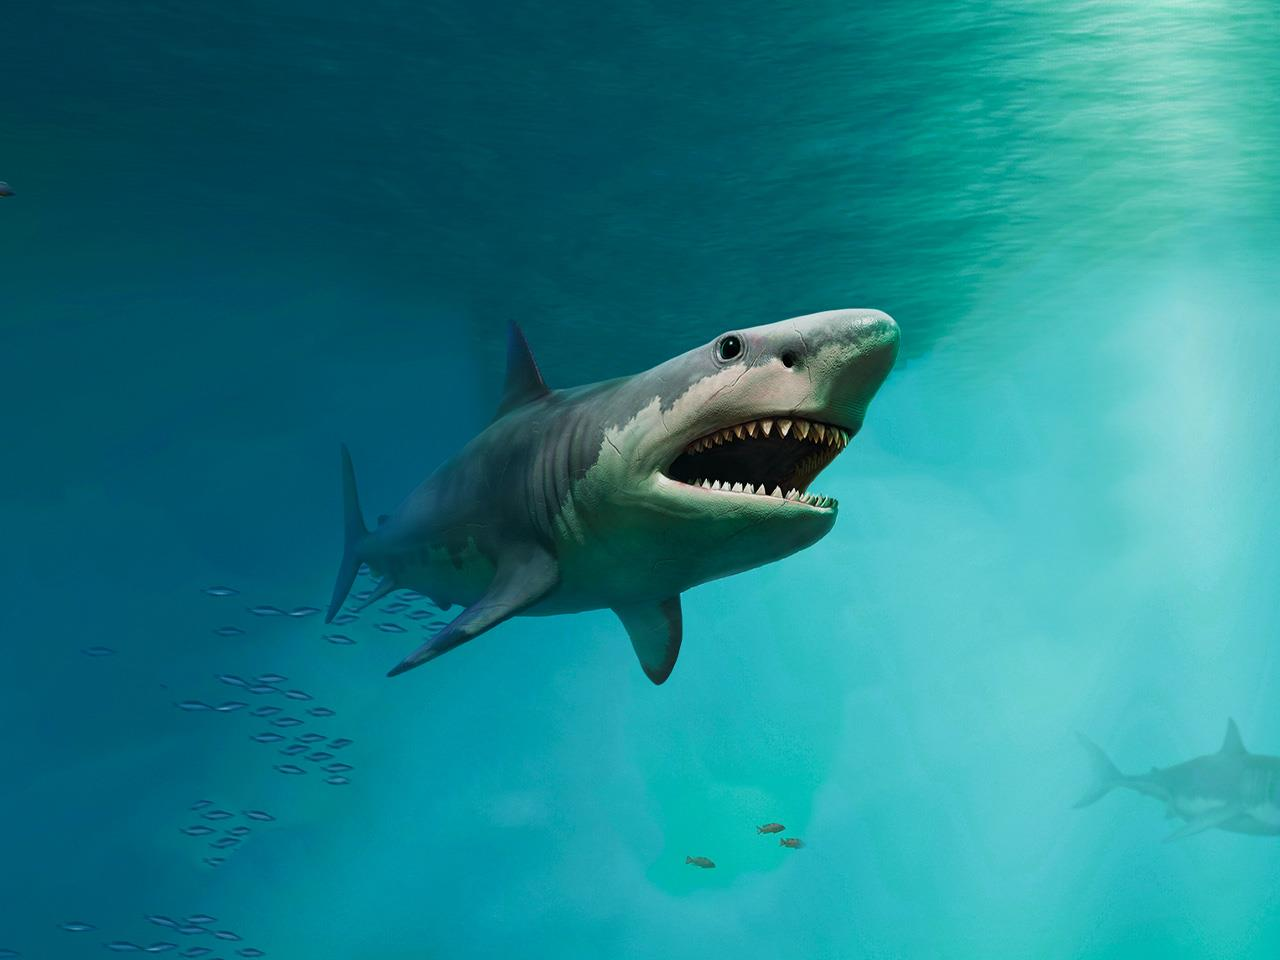 Giti and its Shark Tracking Project